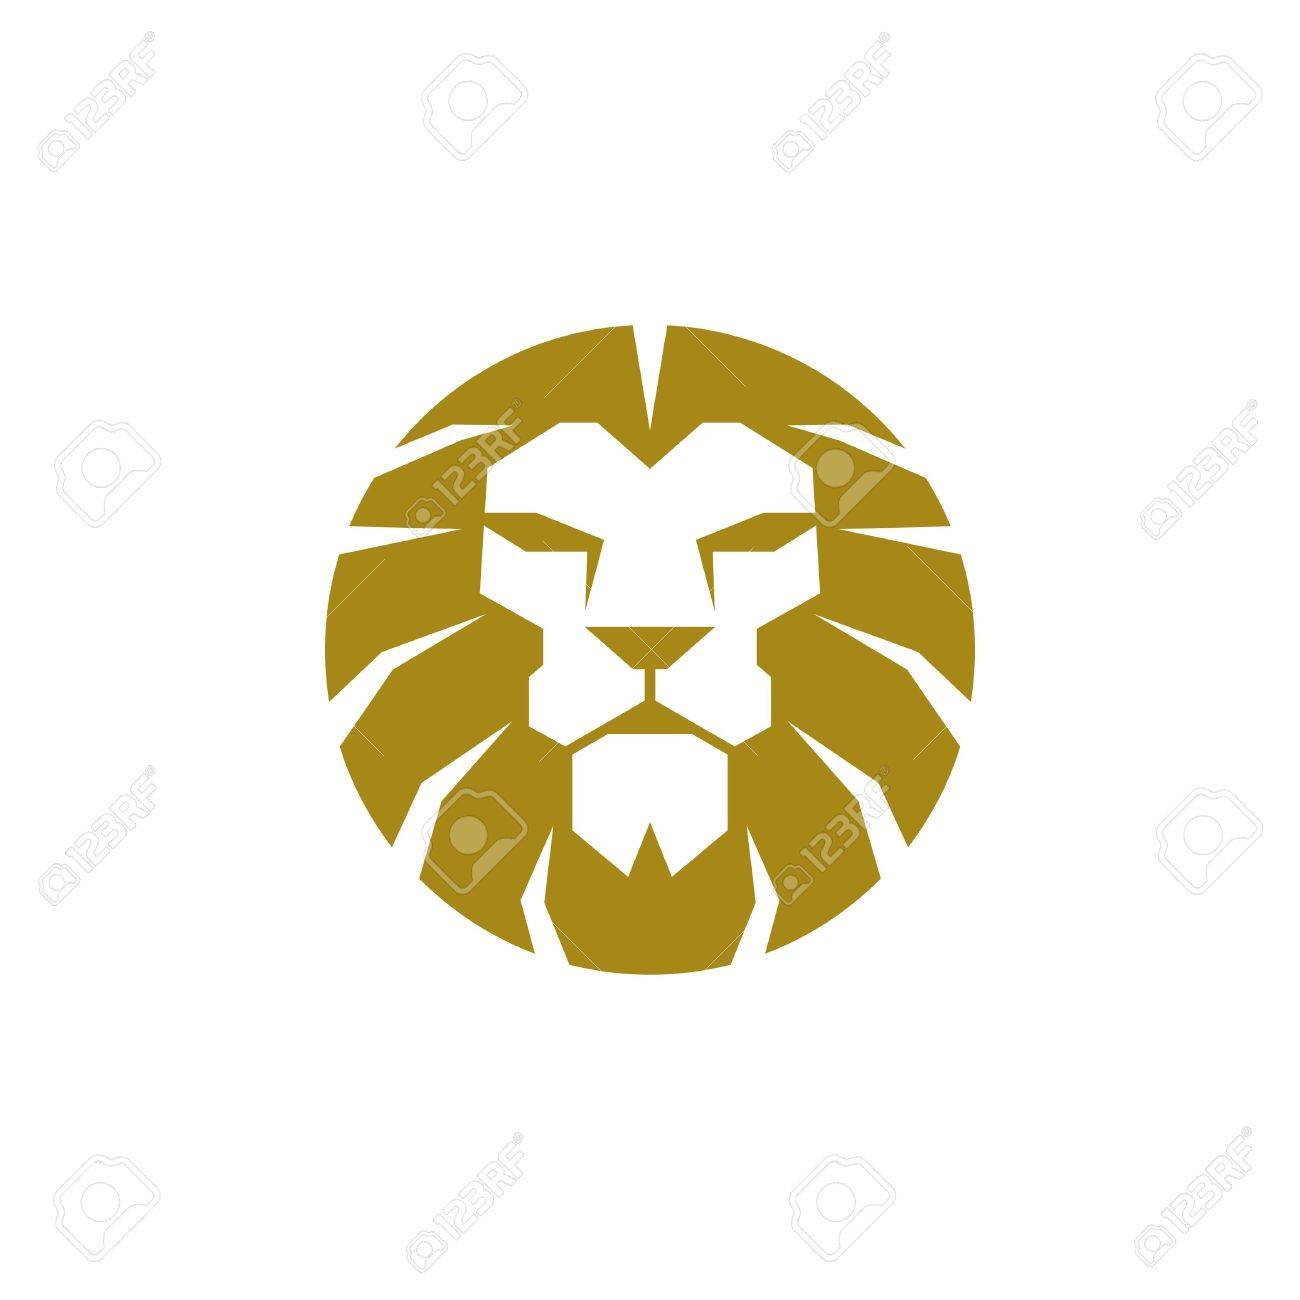 lion logo template stock photo picture and royalty free image